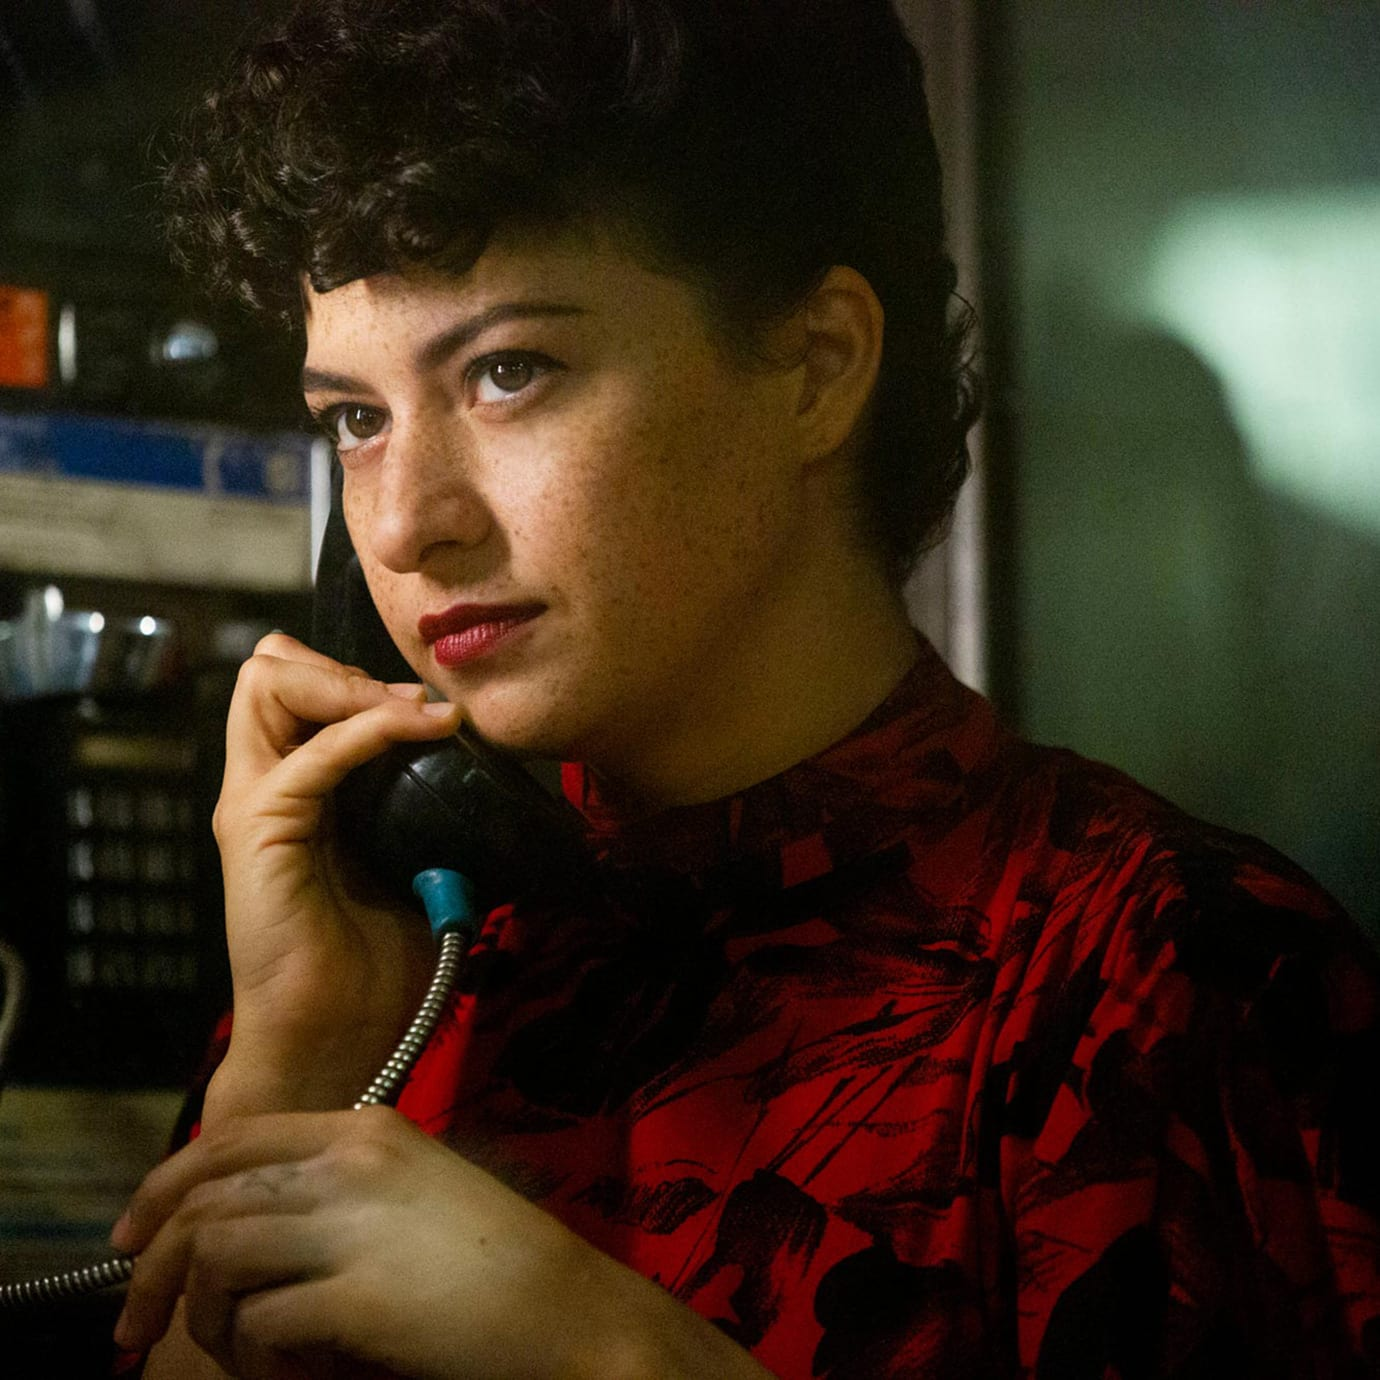 A woman on the telephone.